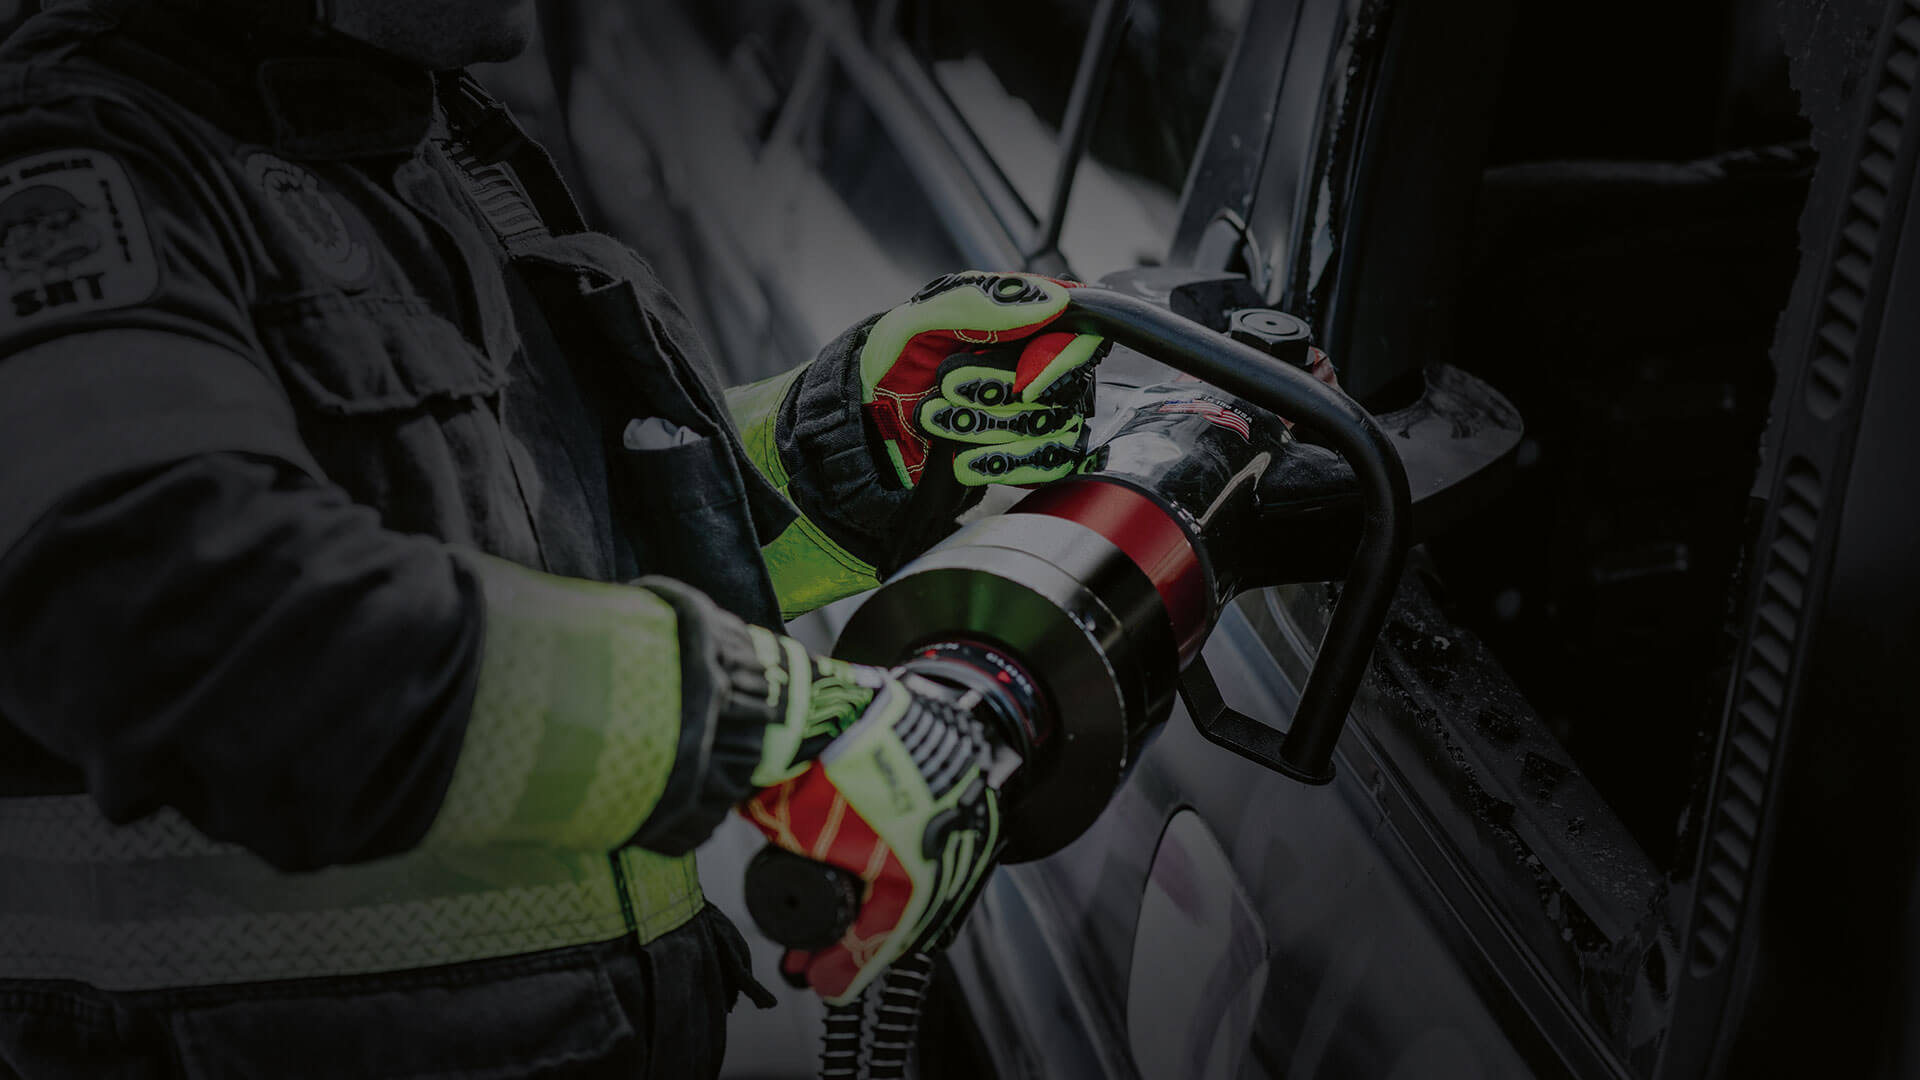 Protective clothing for car rescue and roadside assistance